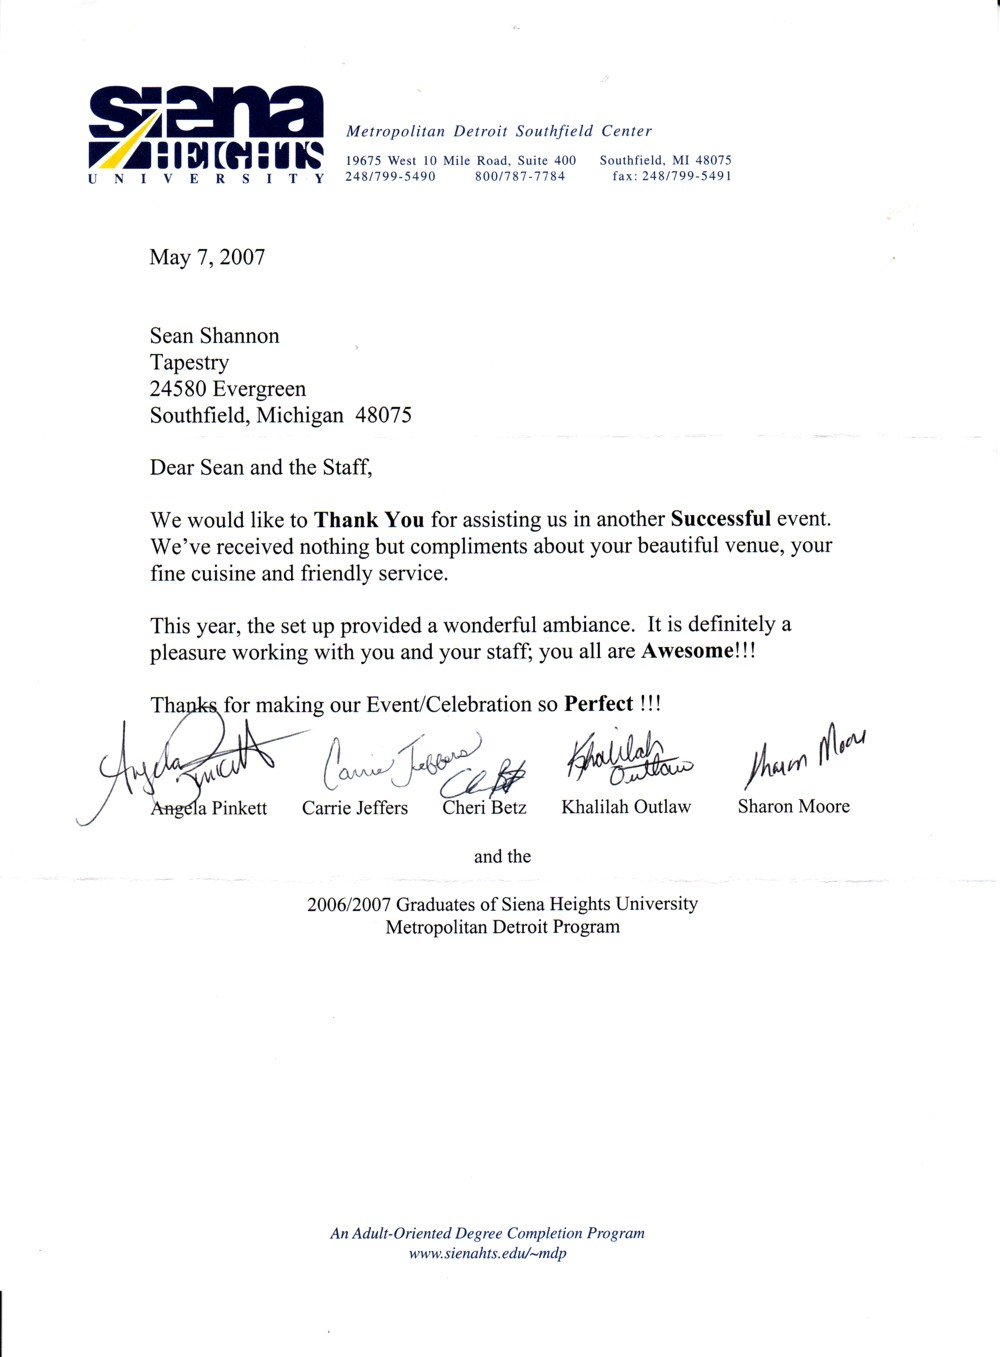 Tapestry Banquet Hall and Catering – Thank You Letters for Recommendation